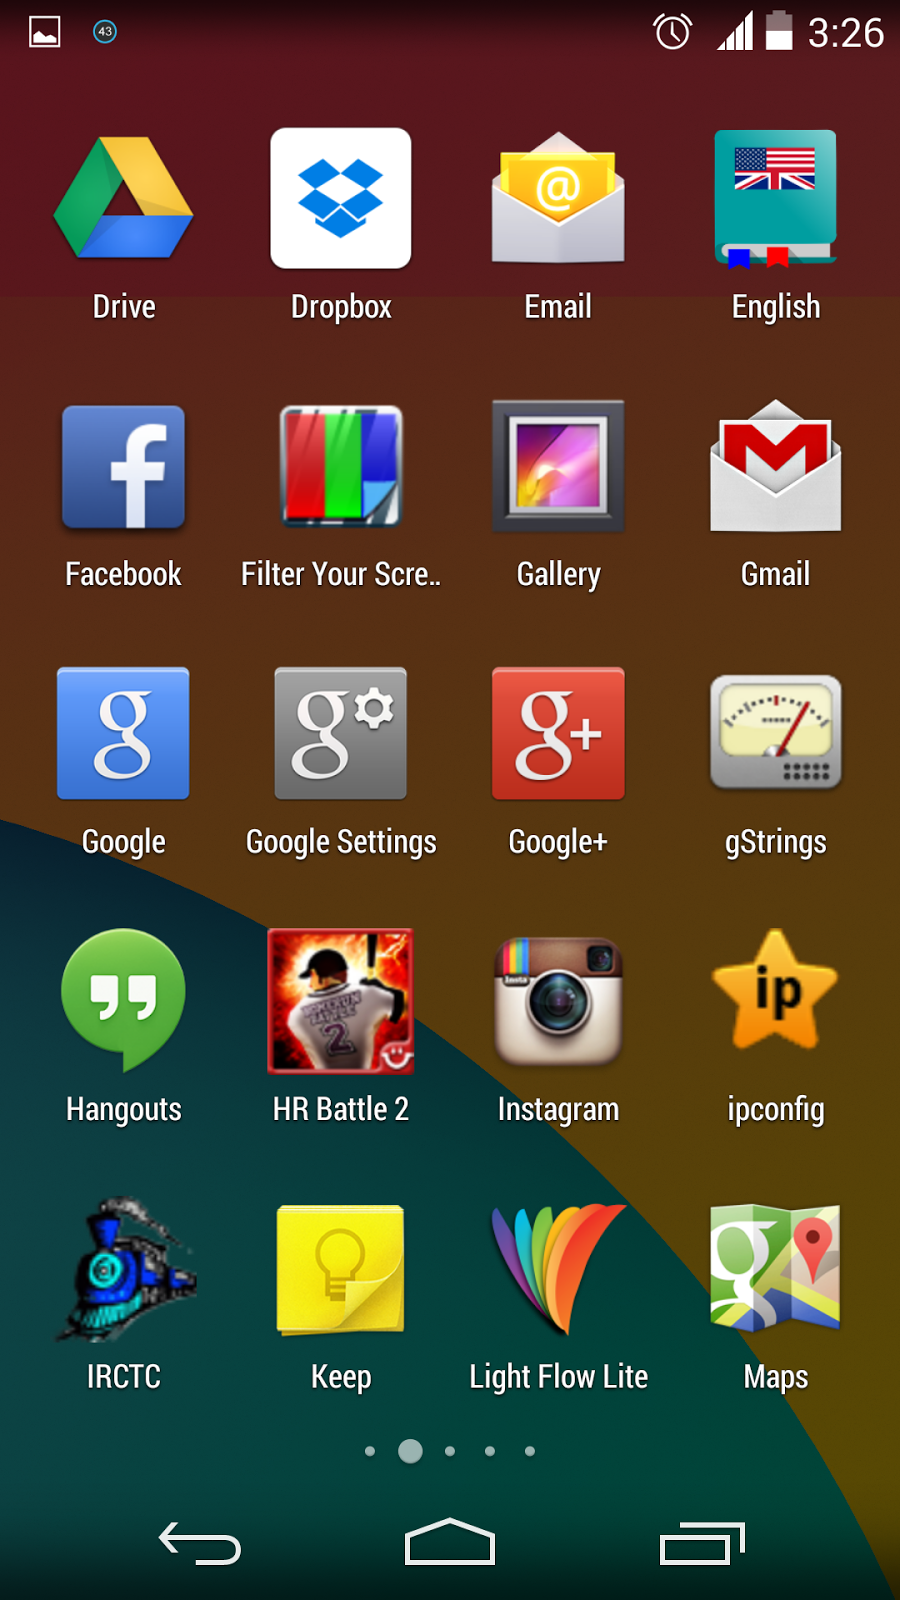 Google+LG+Nexus+5+Android+KitKat+Review+Handson+Detailed+Benchmark++%252816%2529.png